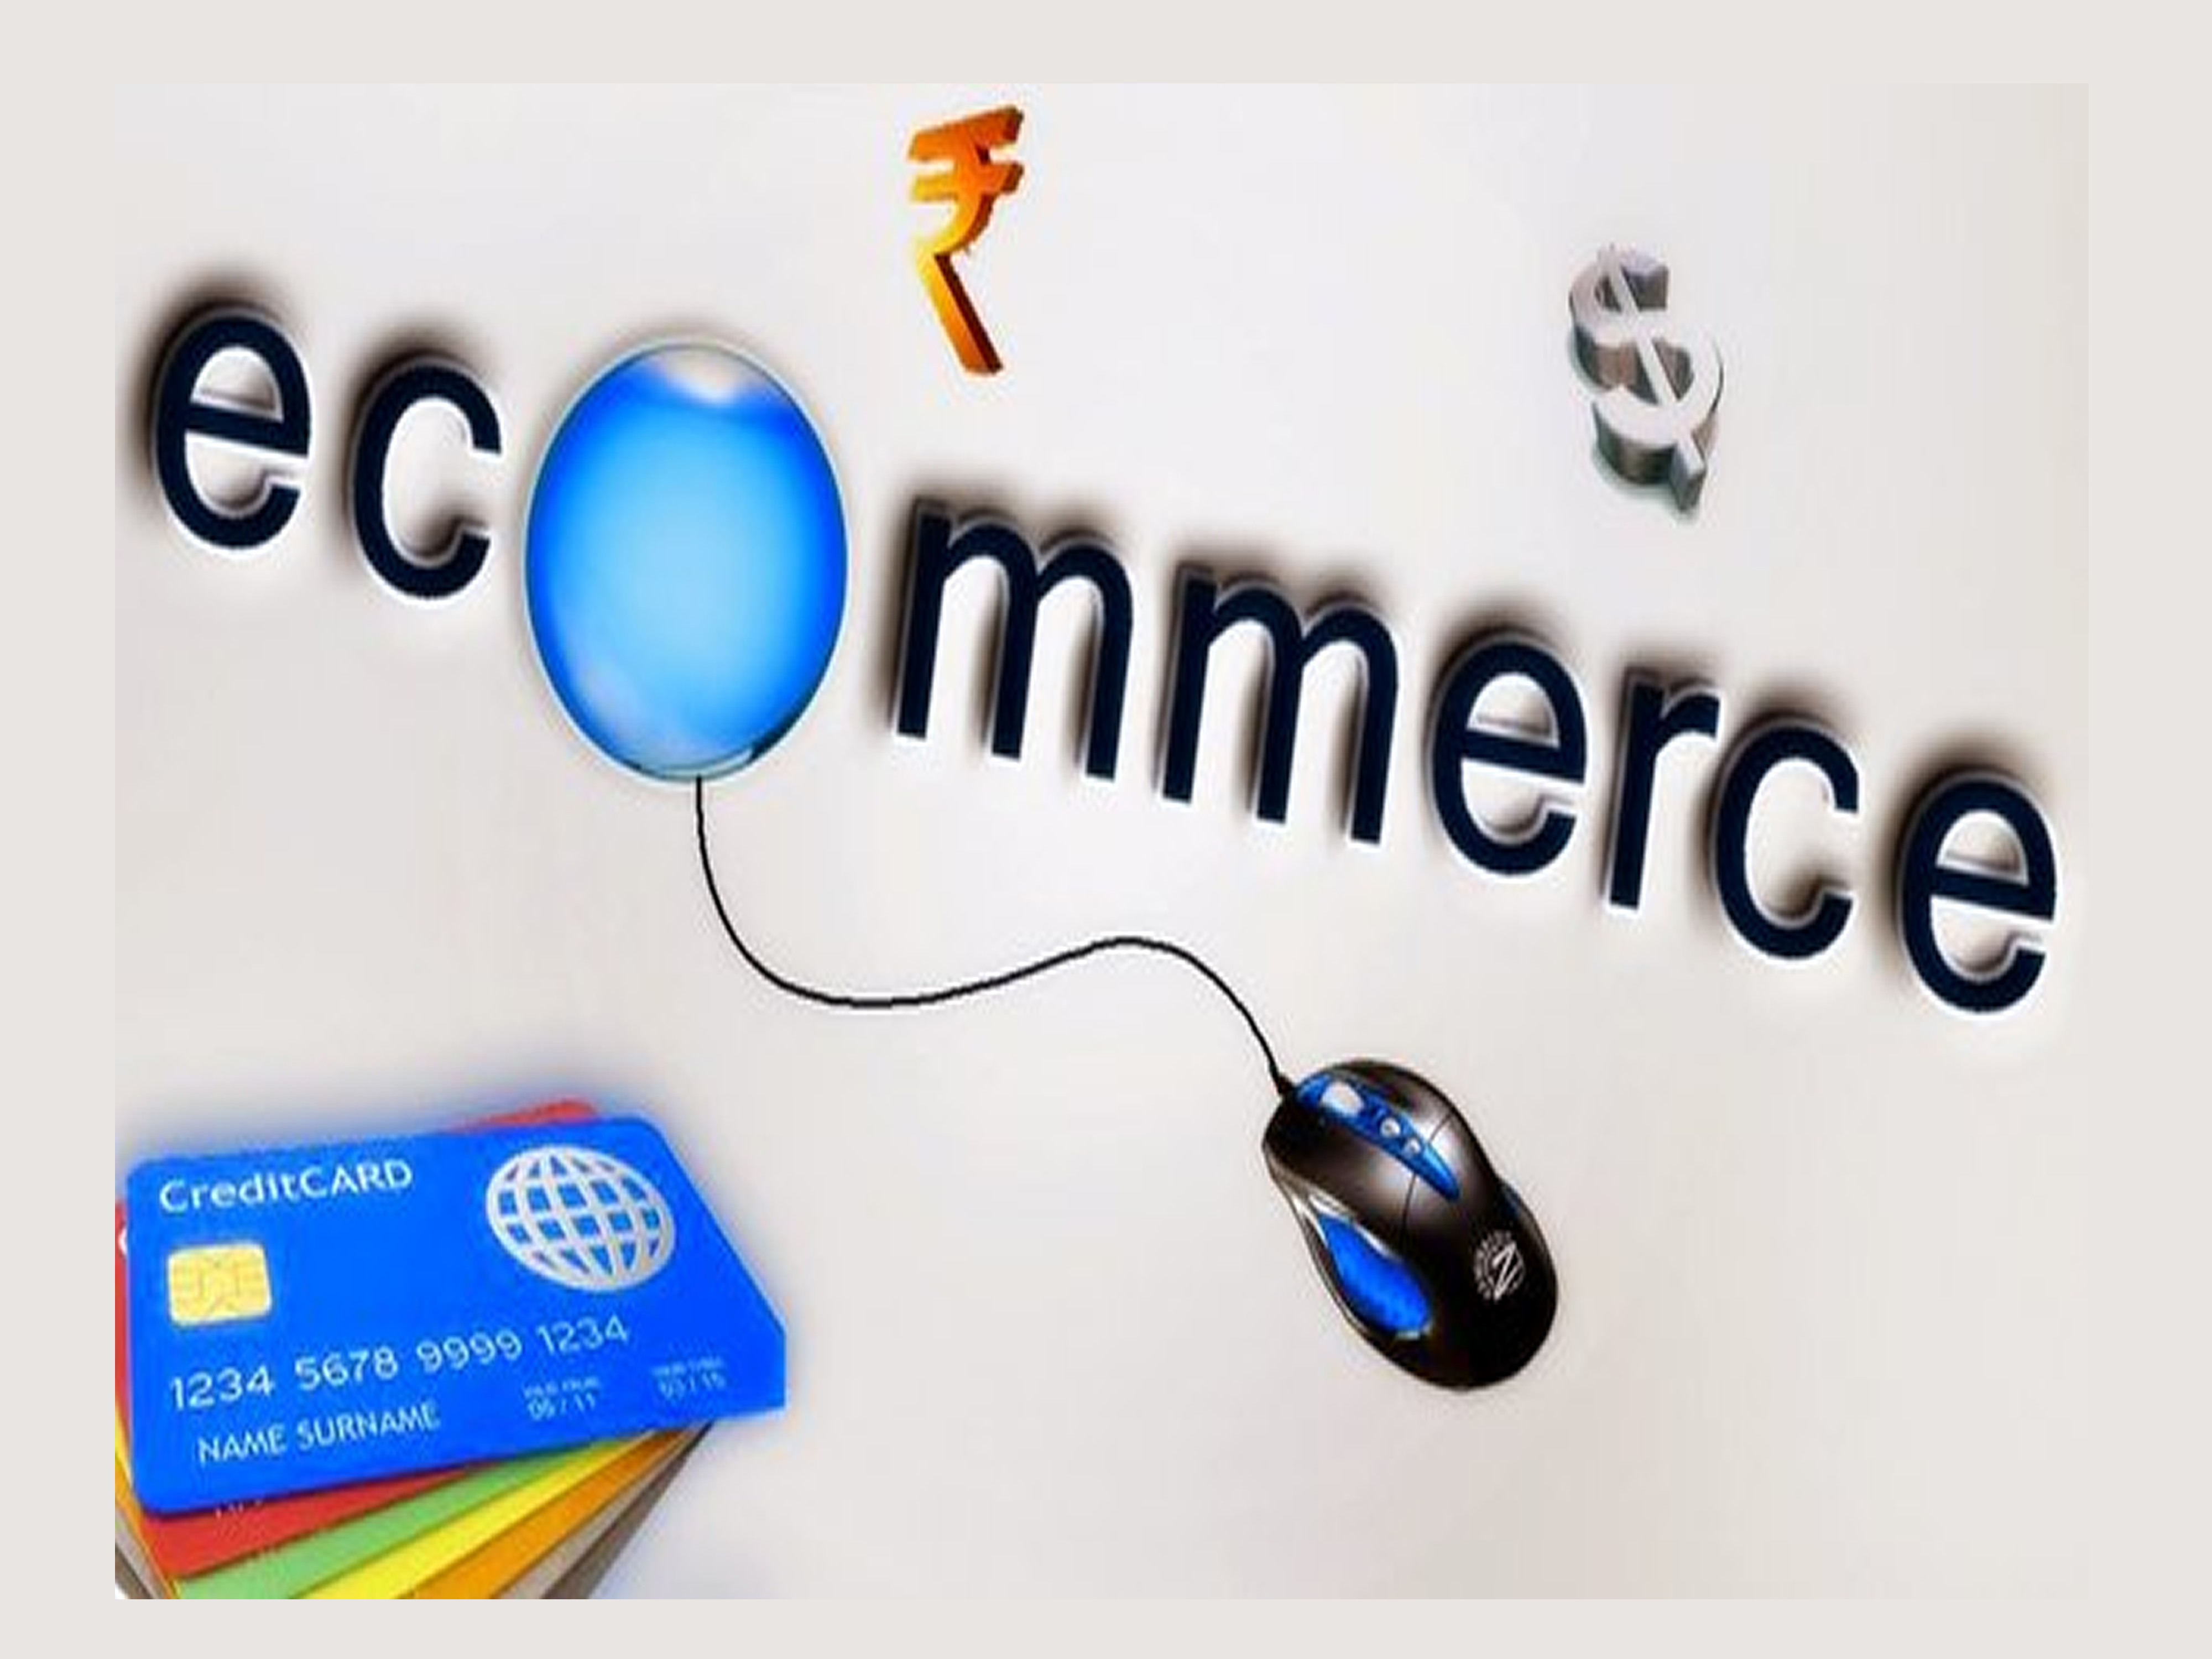 Africa's Booming e-commerce – Positioning Your Business for Greater Share